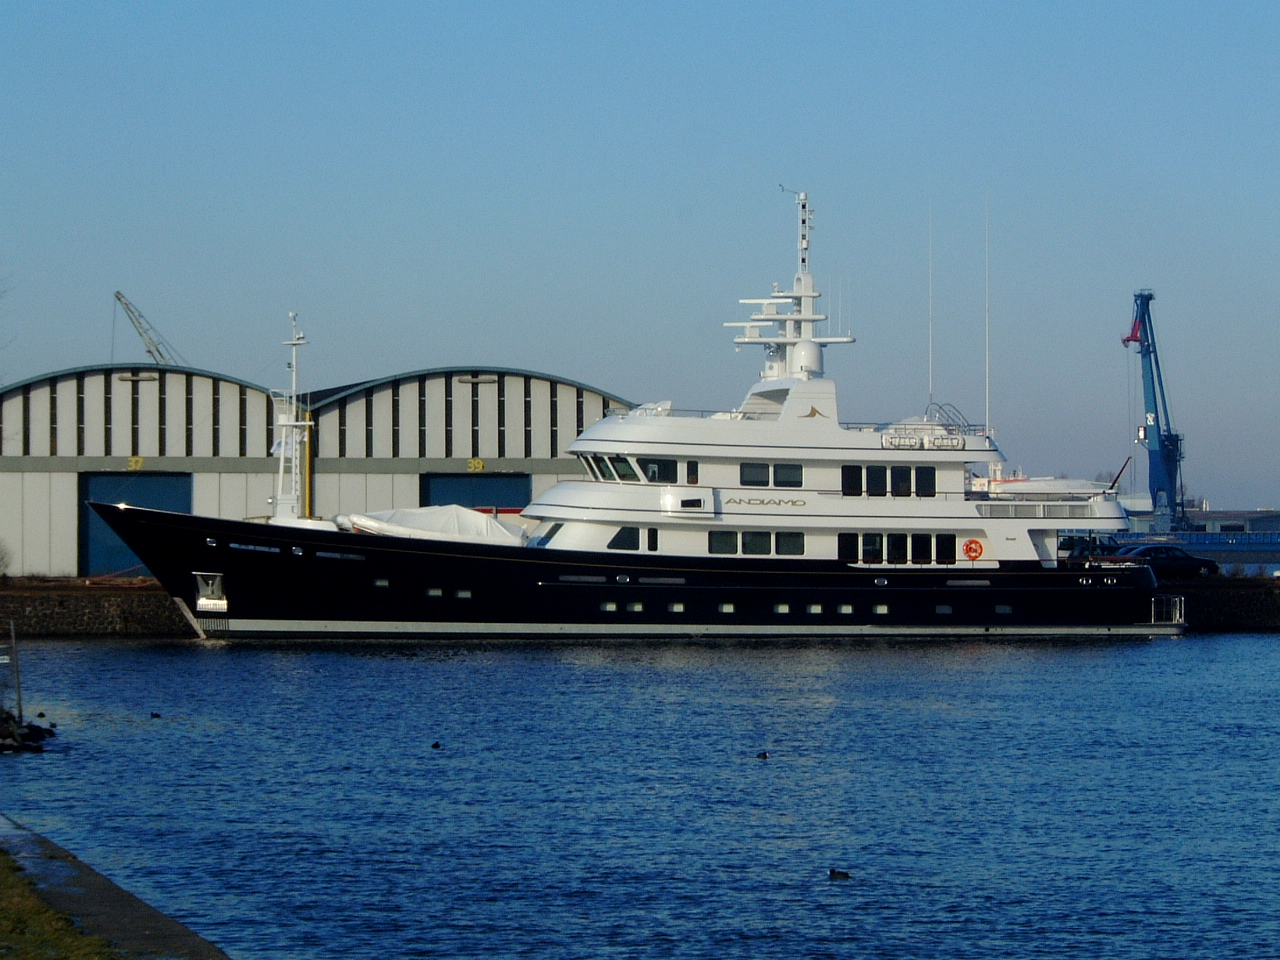 maartent yacht expensive boat black and white private ship